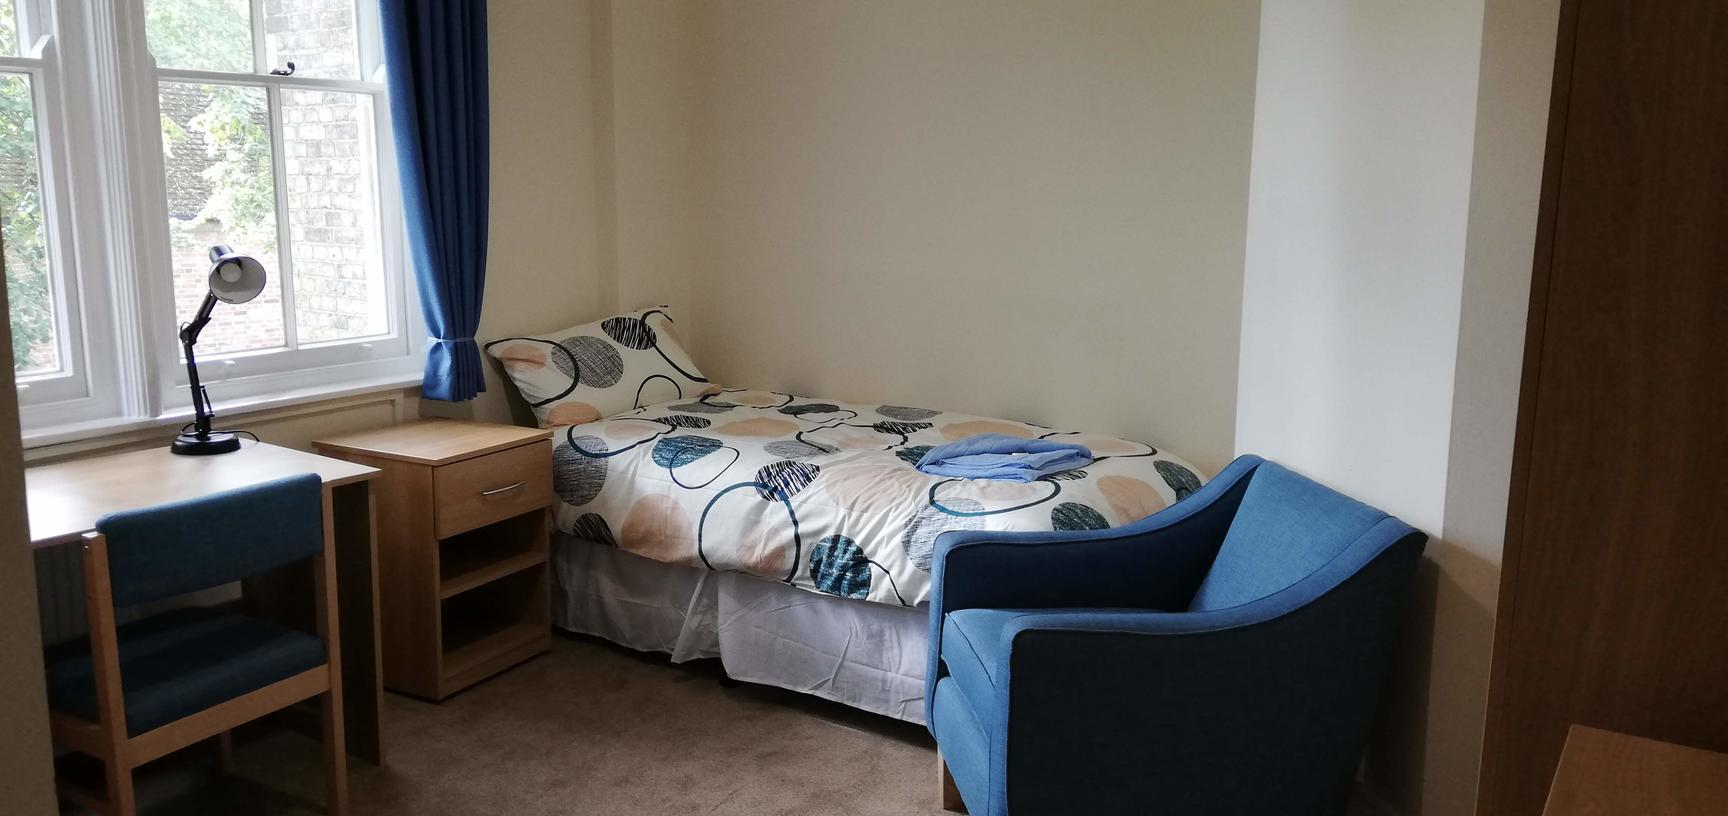 Photo of a single bedroom